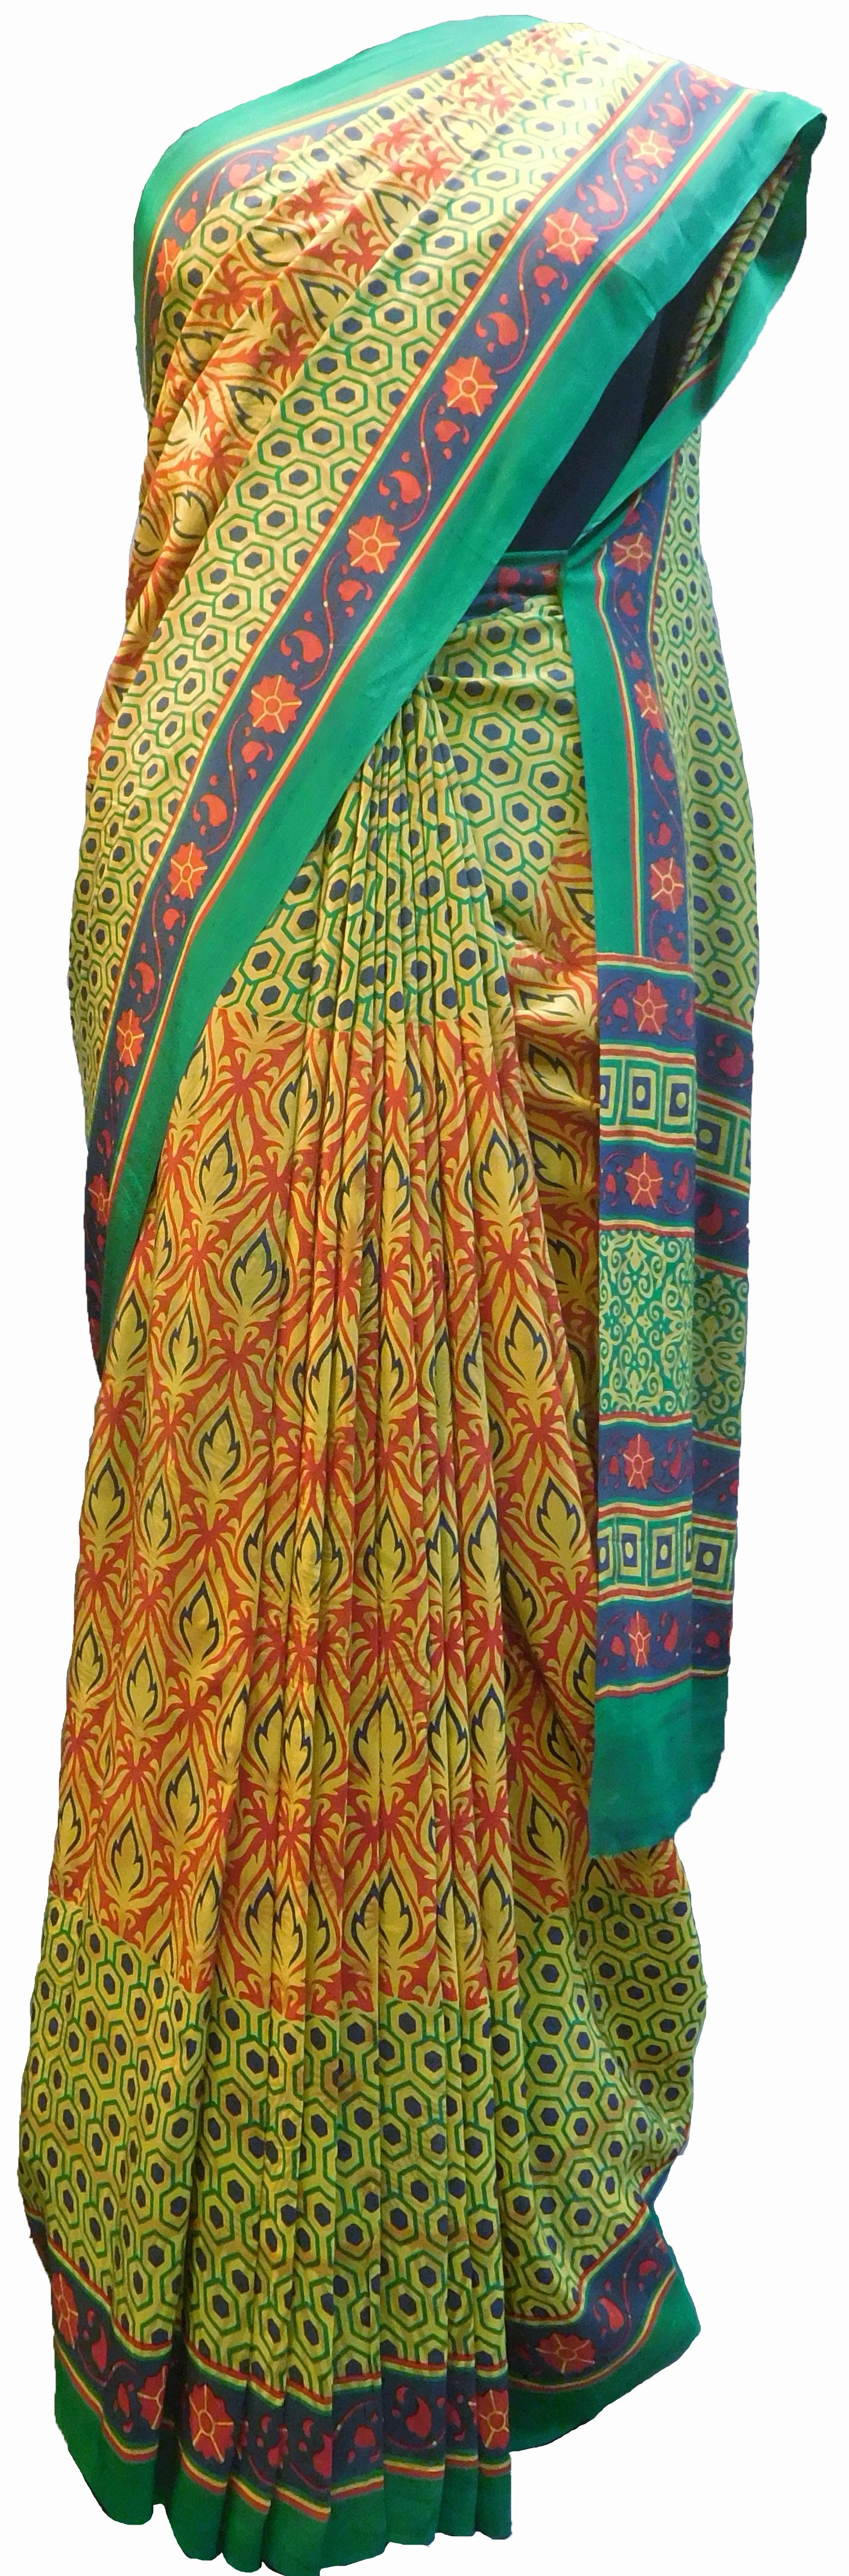 SMSAREE Multi Color Designer Wedding Partywear Pure Crepe Hand Brush Print Hand Embroidery Work Bridal Saree Sari With Blouse Piece RP356